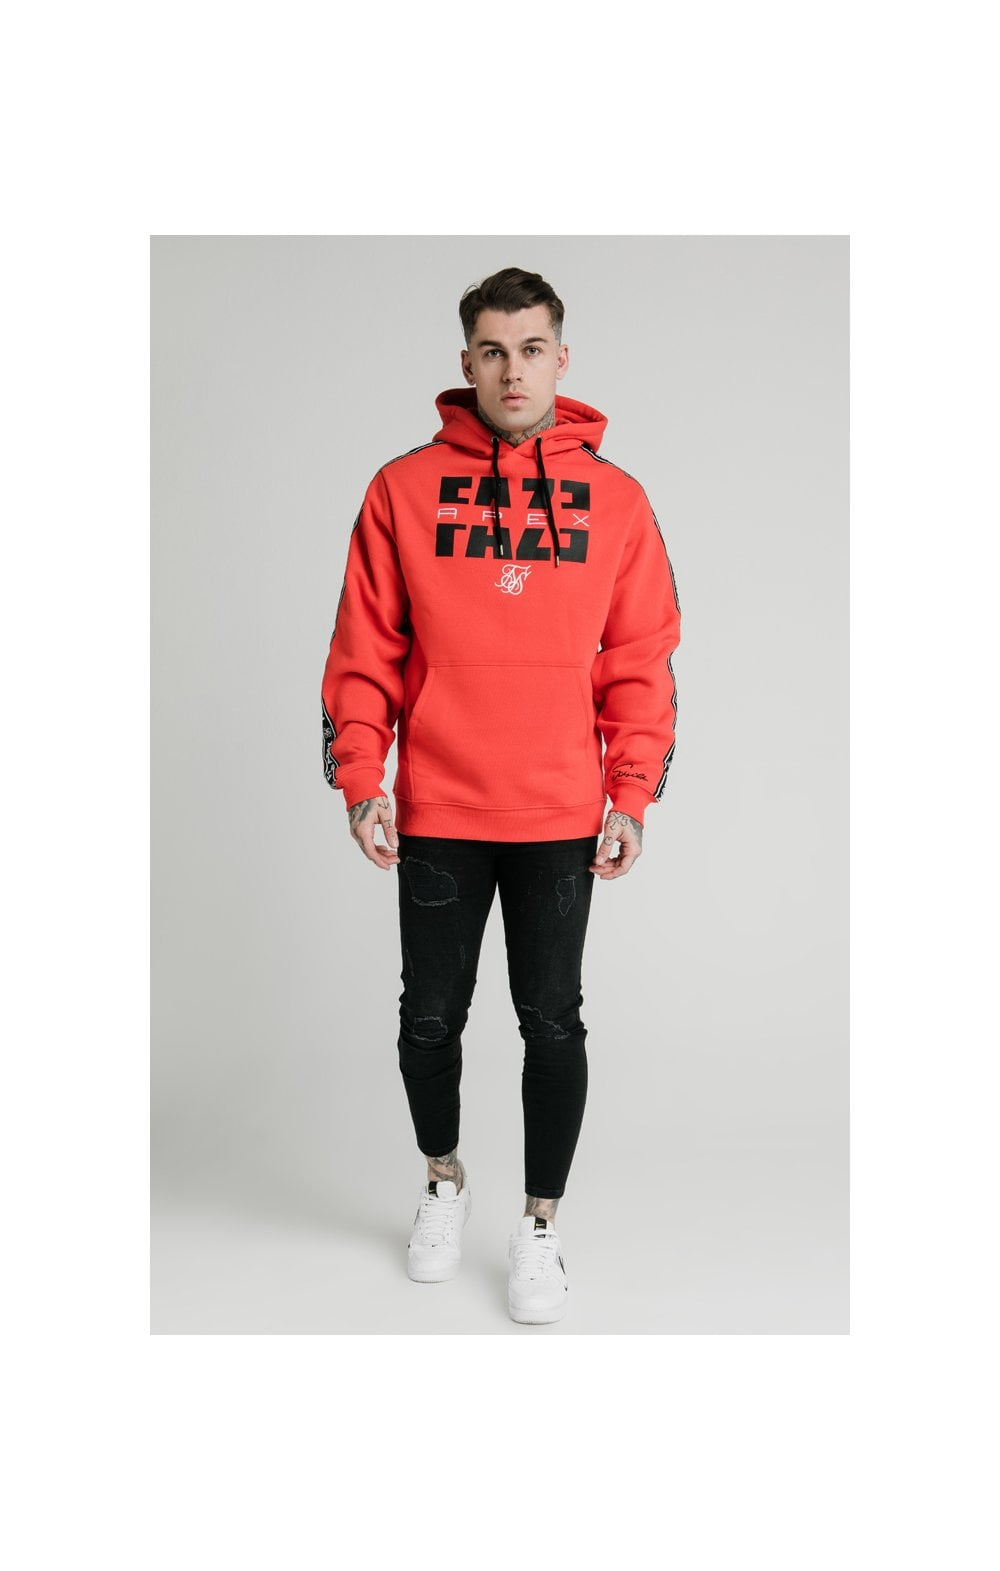 SikSilk x FaZe Apex Sweat à Capuche - Rouge (5)